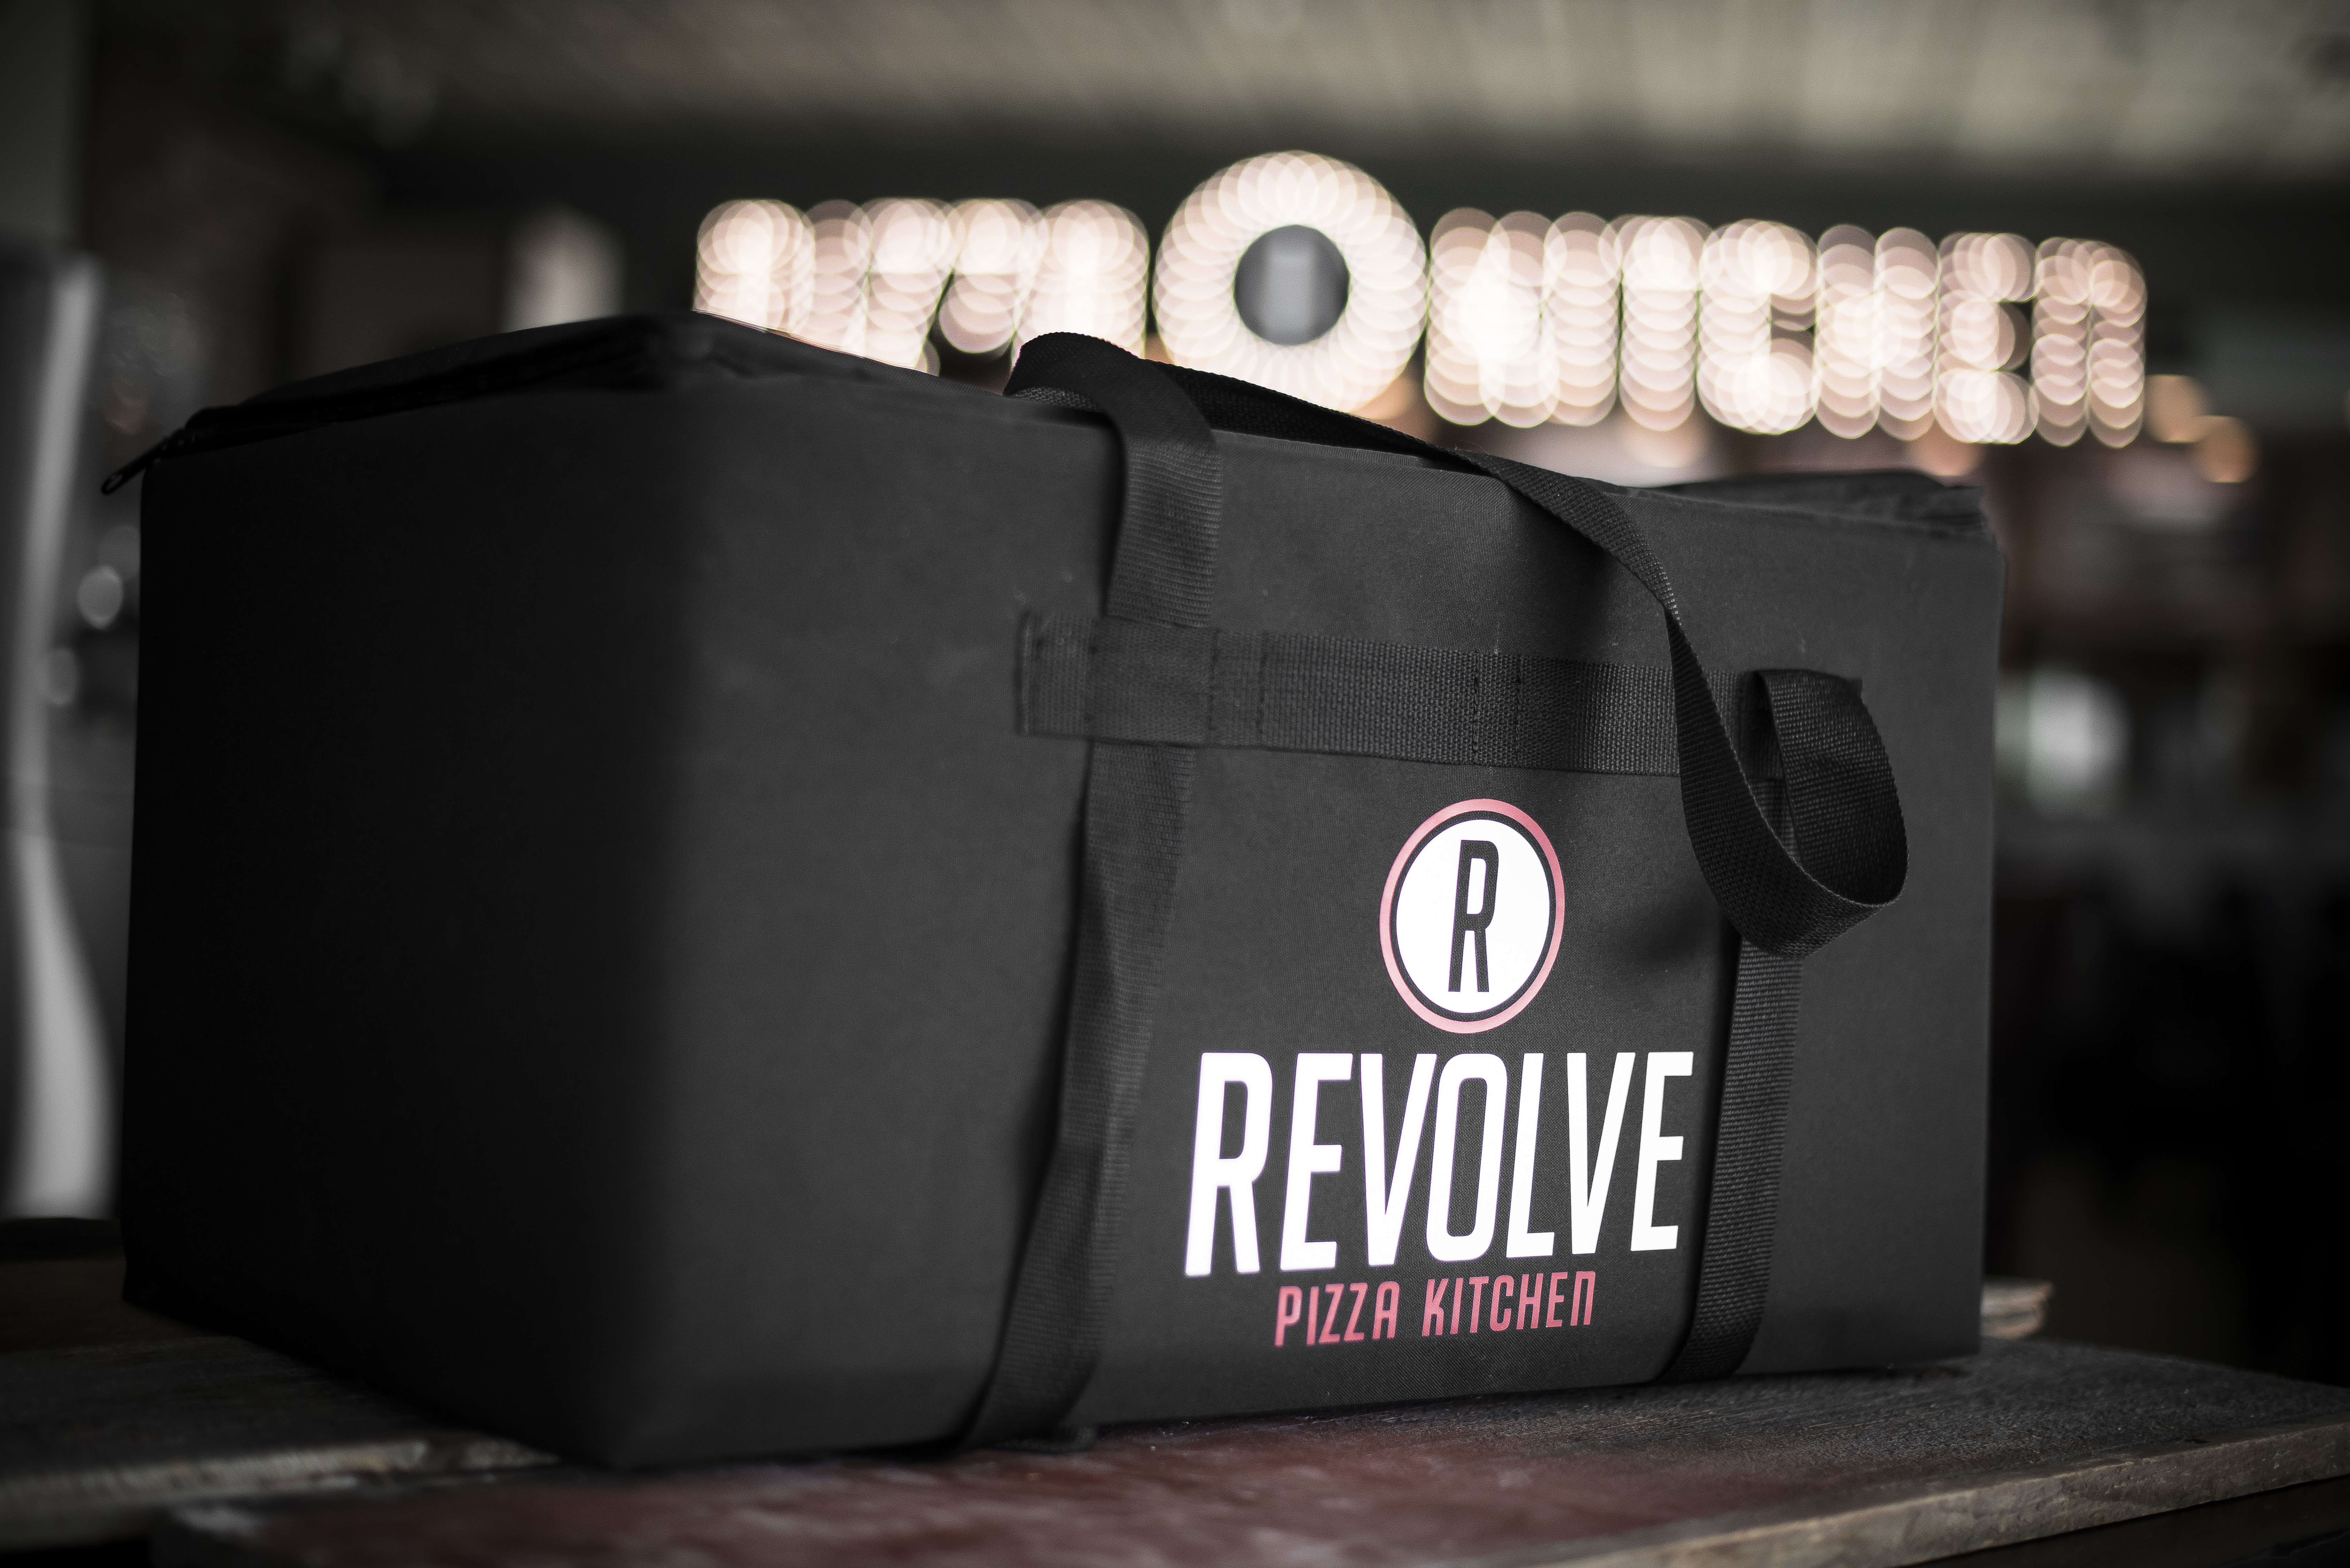 Revolve workers deliver the customizable fast-casual pizza experience